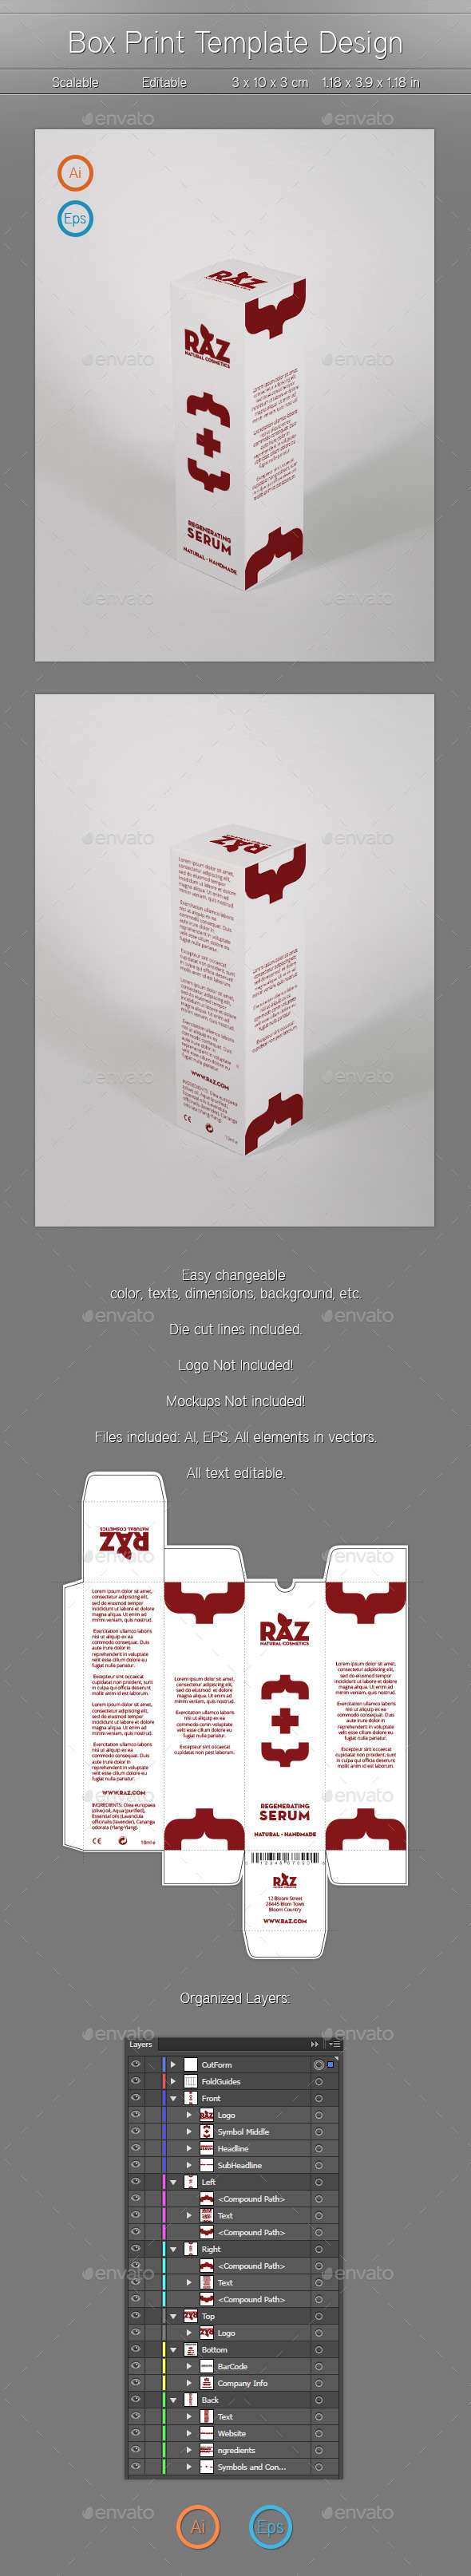 Box Template Design - Packaging Print Templates